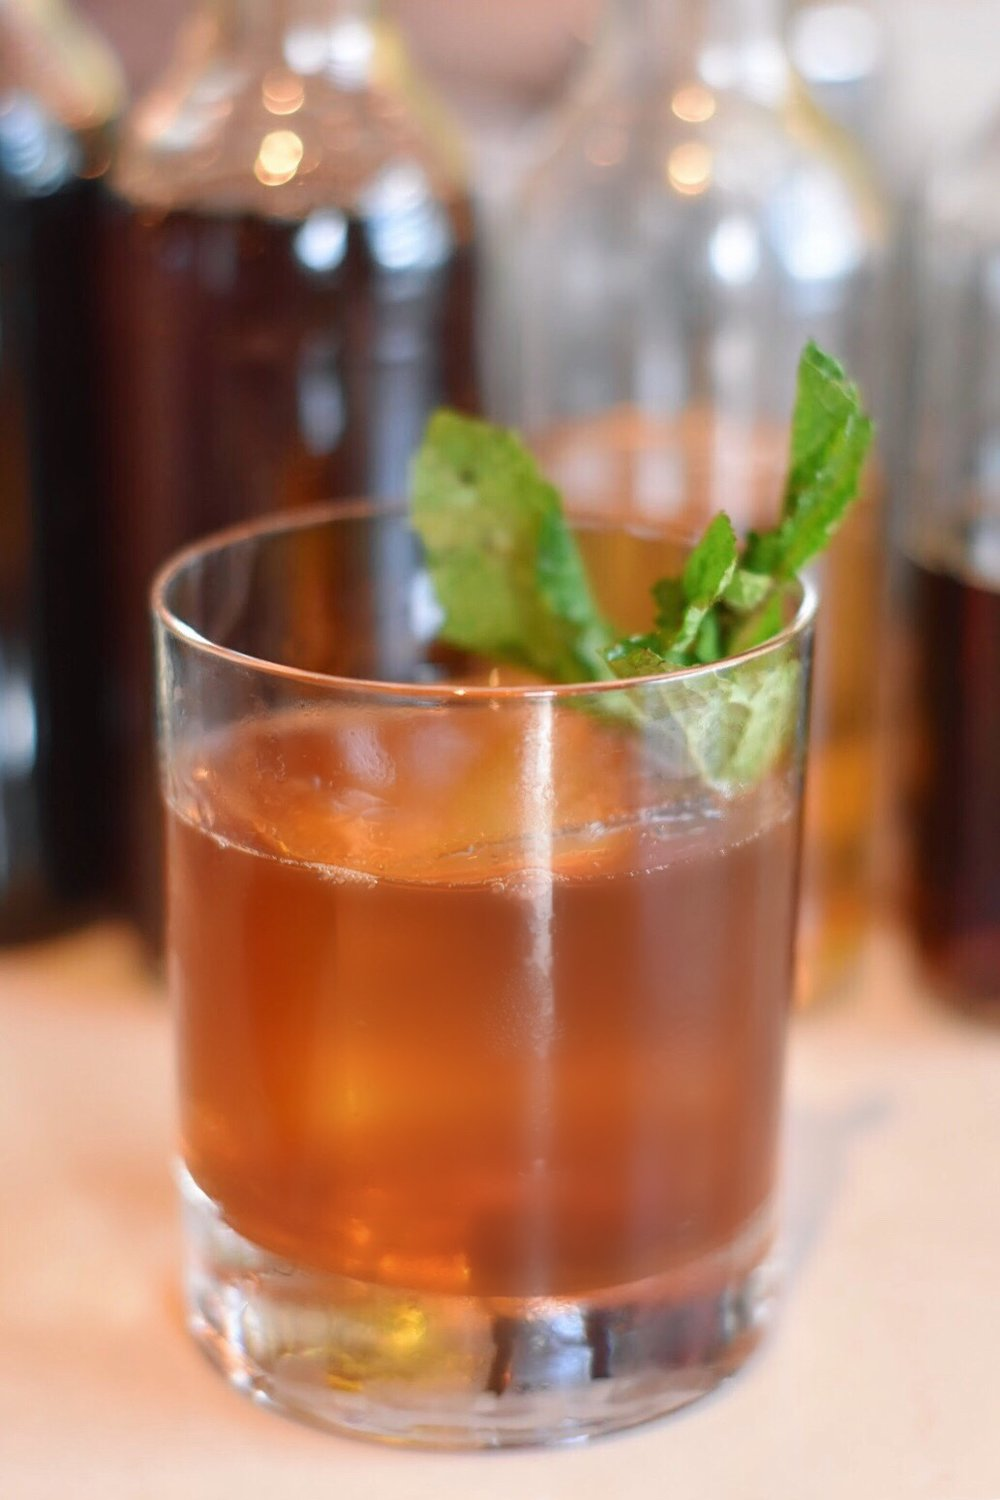 Bourbon and Cognac Cocktail Made with Mint and Black Tea